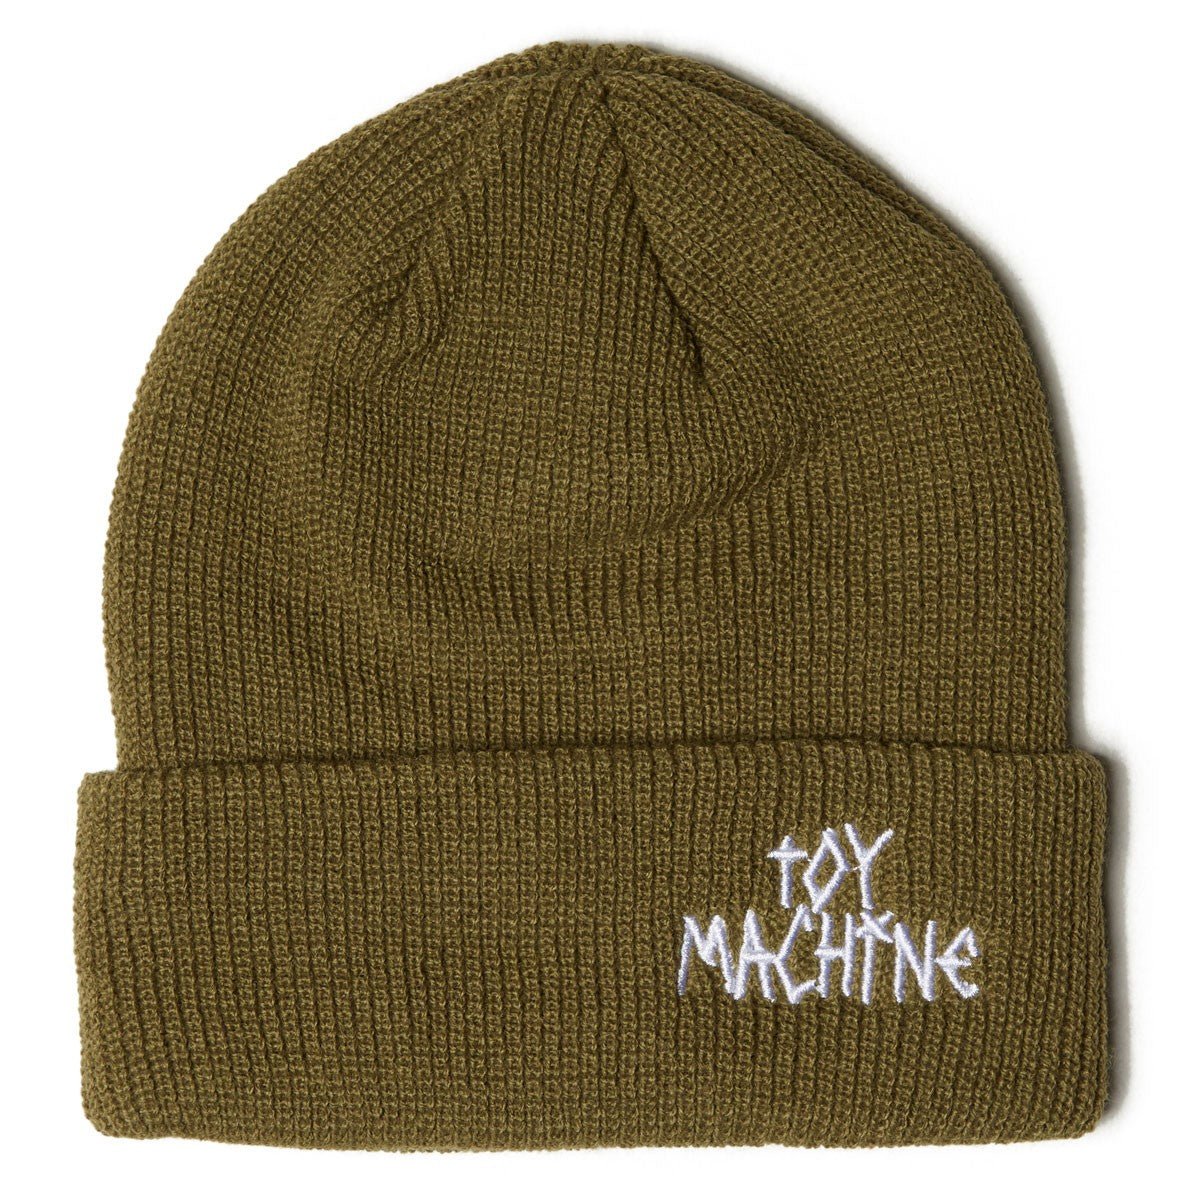 Toy Machine Tape Logo Beanie Olive